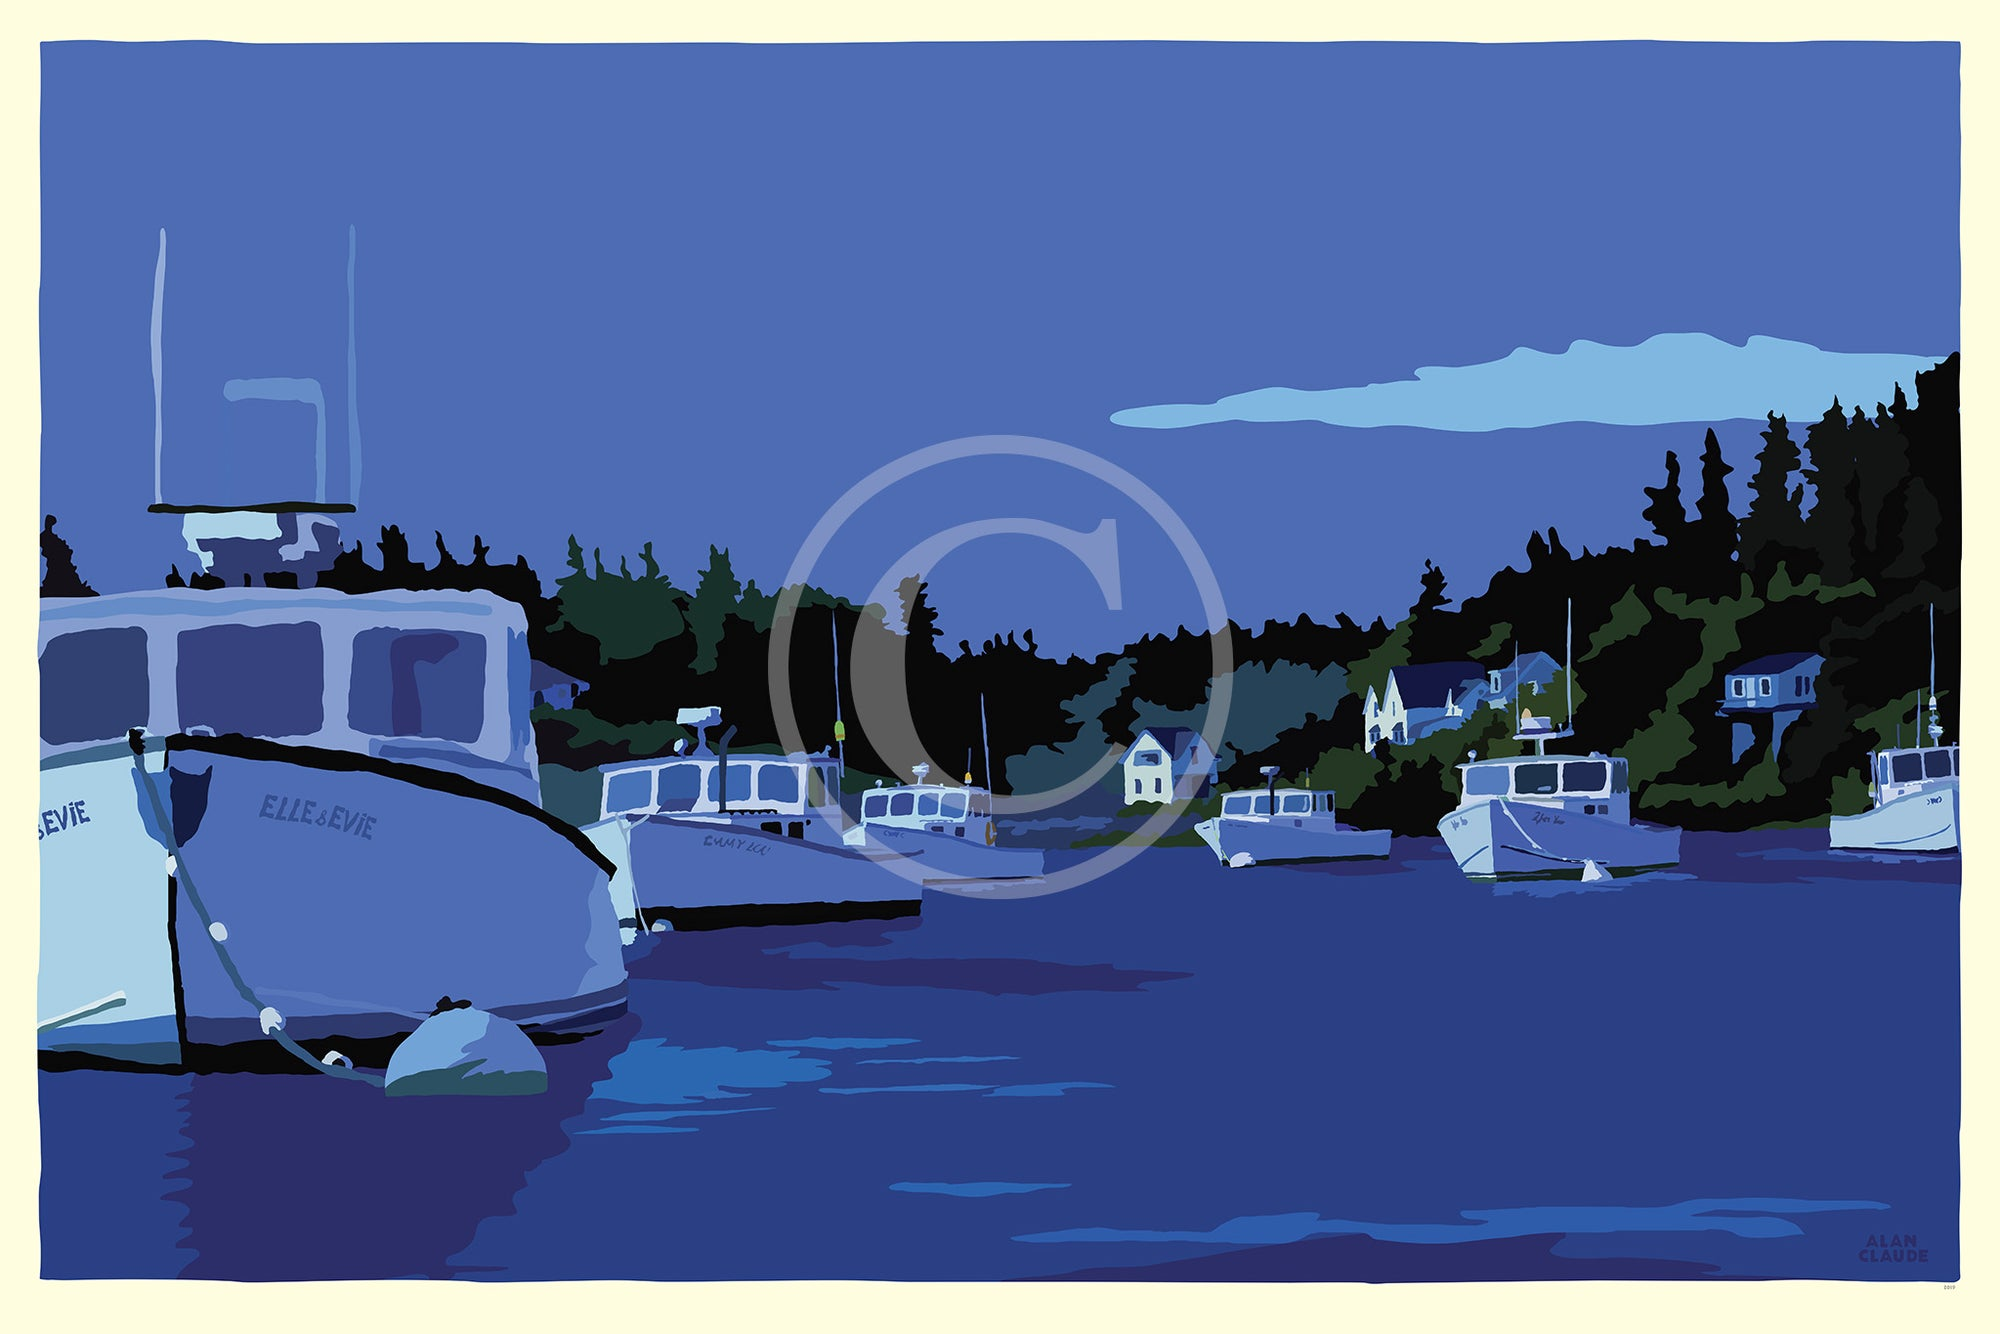 "Moonlight Over Port Clyde Art Print 36"" x 53"" Wall Poster - Maine by Alan Claude"